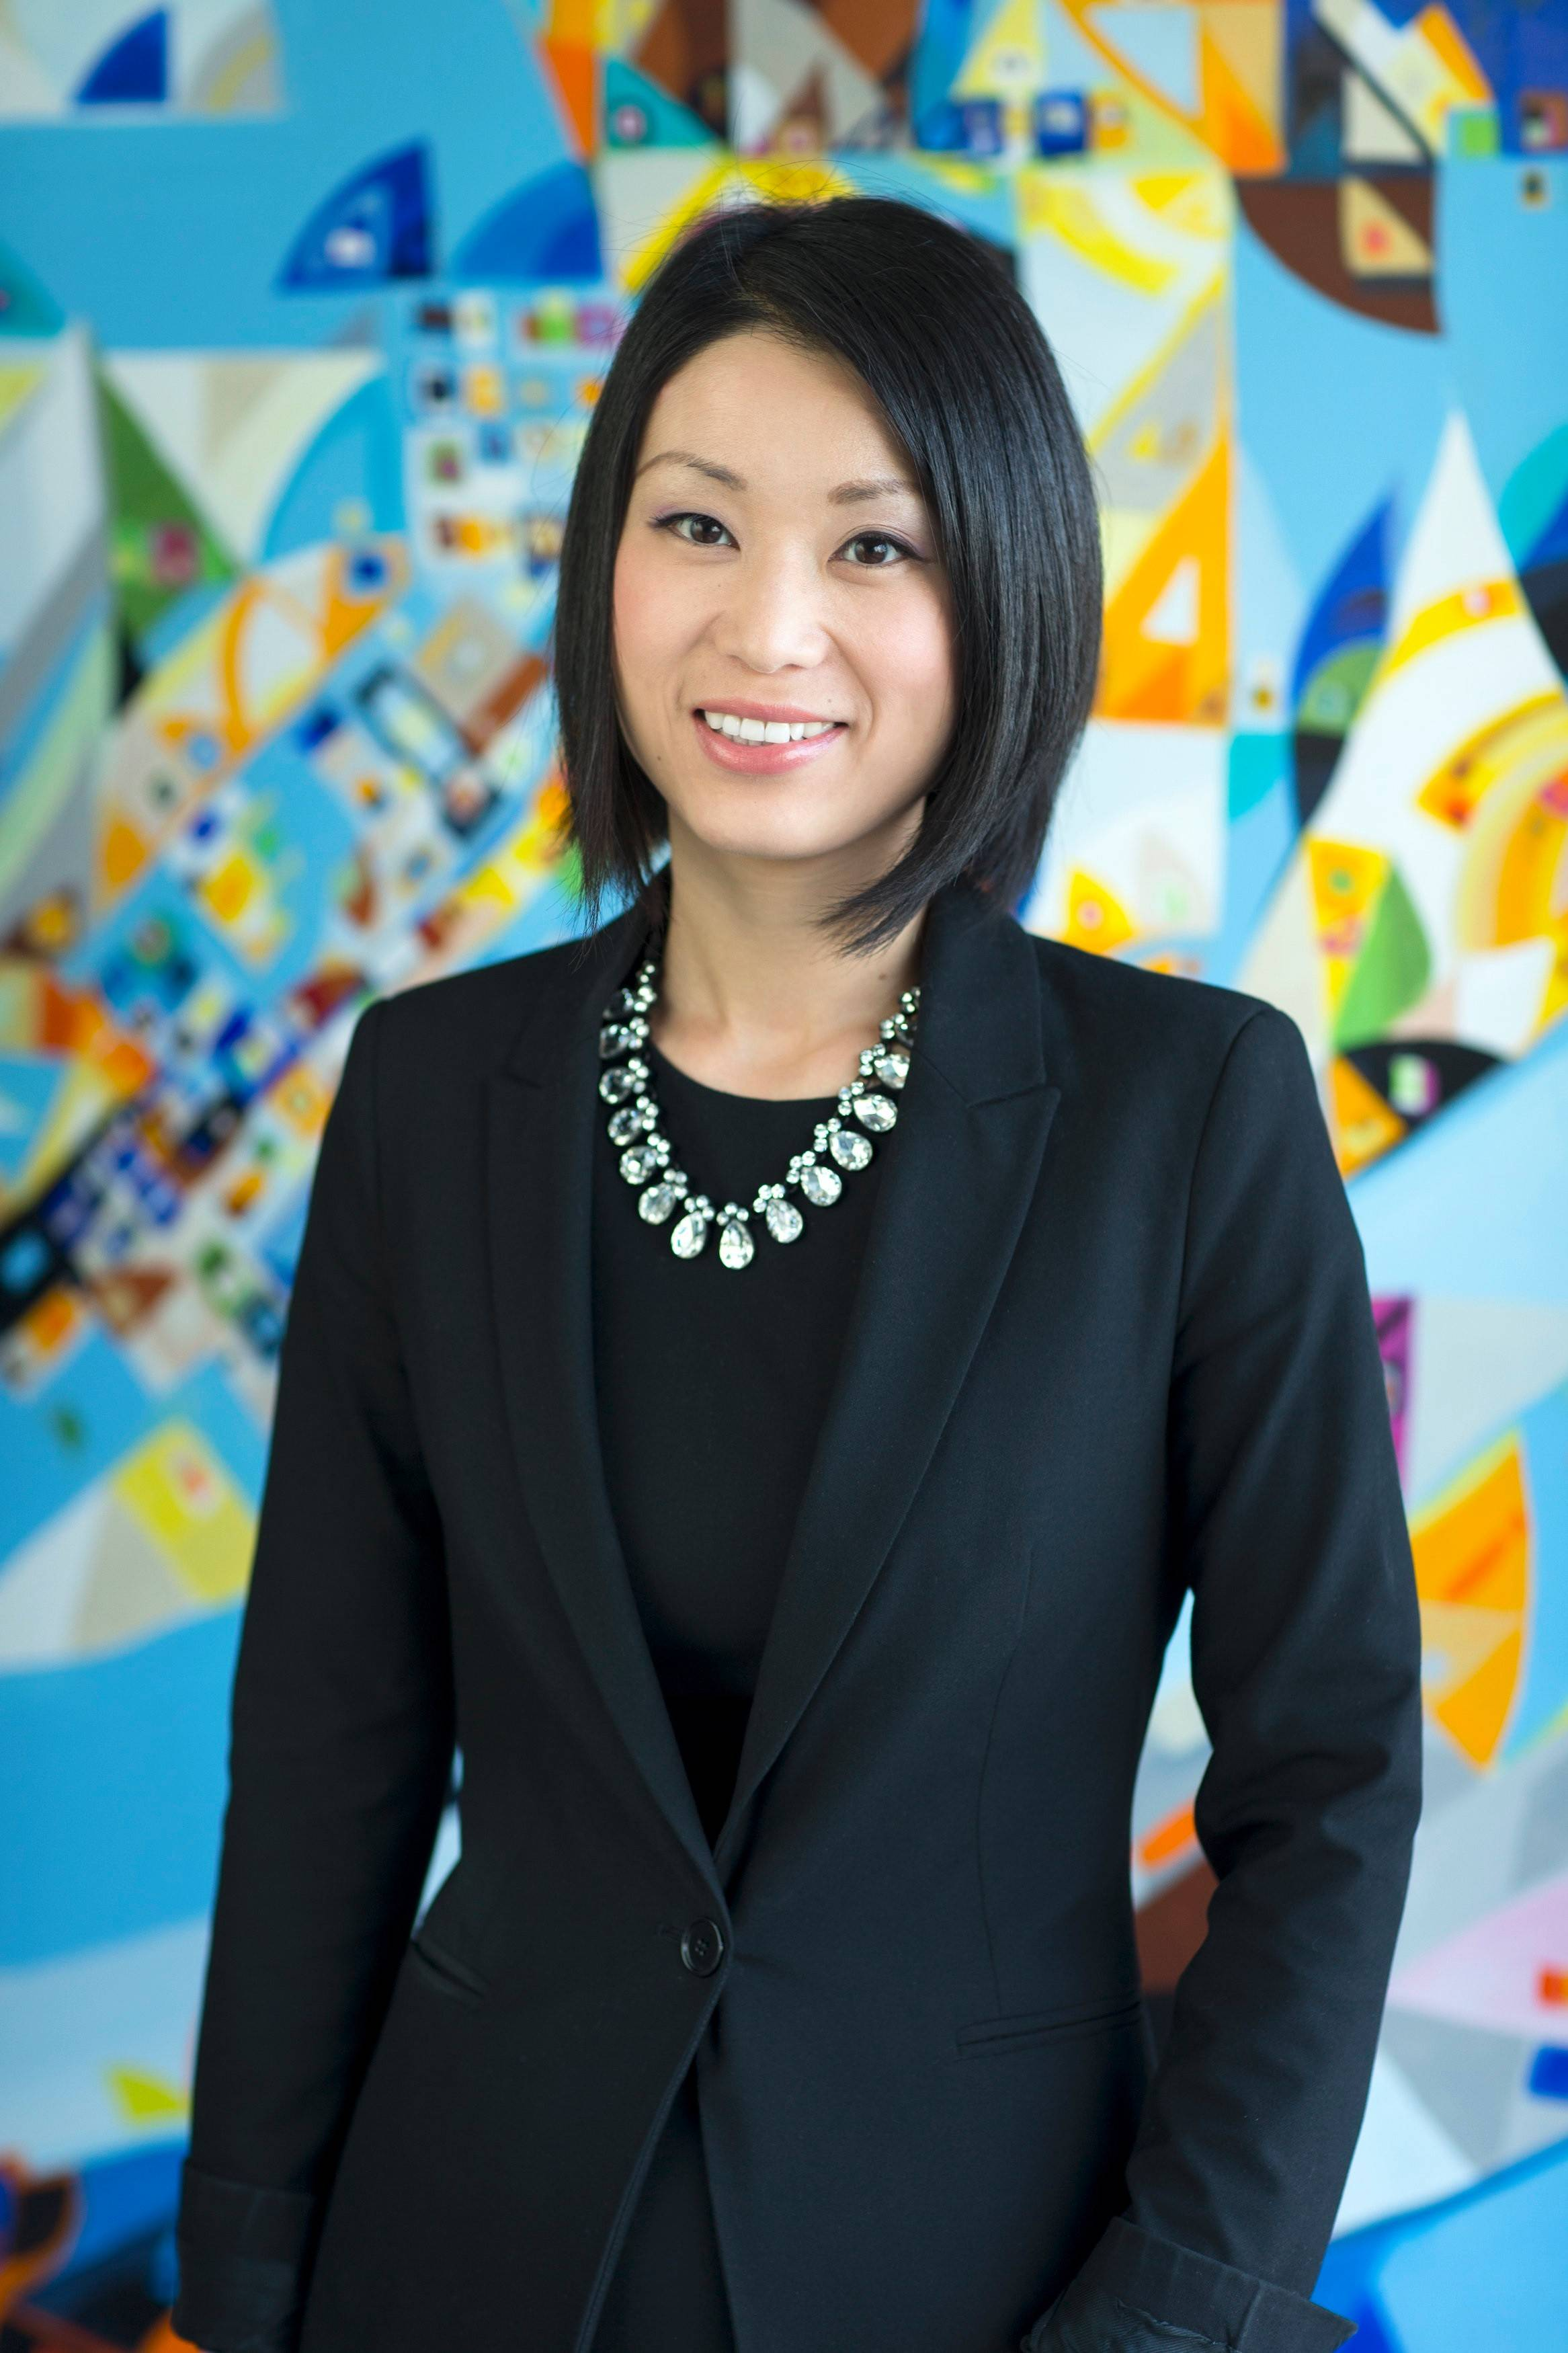 From China to Oak Brook, hotel director keeps traditional values, work ethic